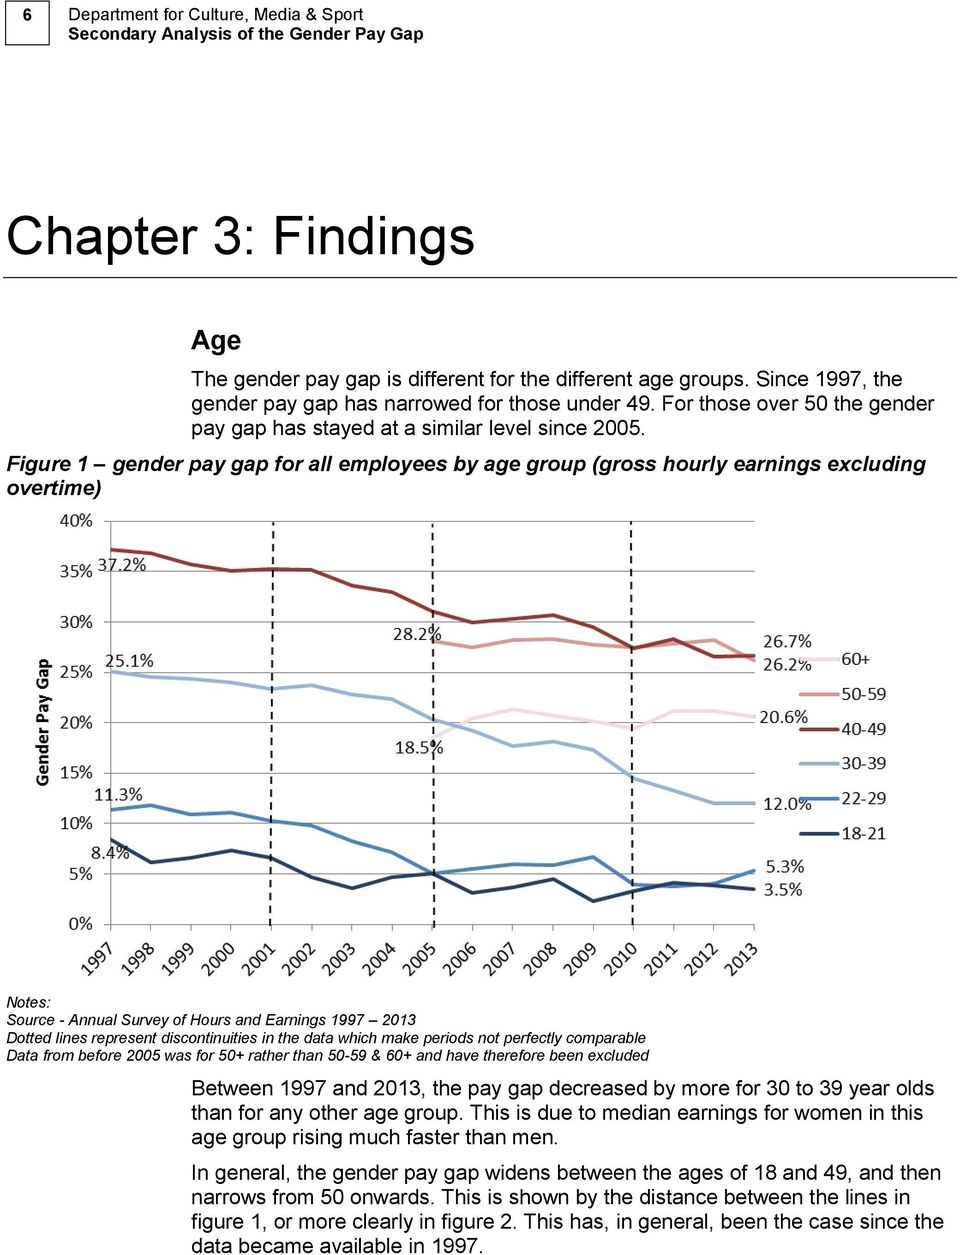 Figure 1 gender pay gap for all employees by age group (gross hourly earnings excluding overtime) Source - Annual Survey of Hours and Earnings 1997 2013 Dotted lines represent discontinuities in the